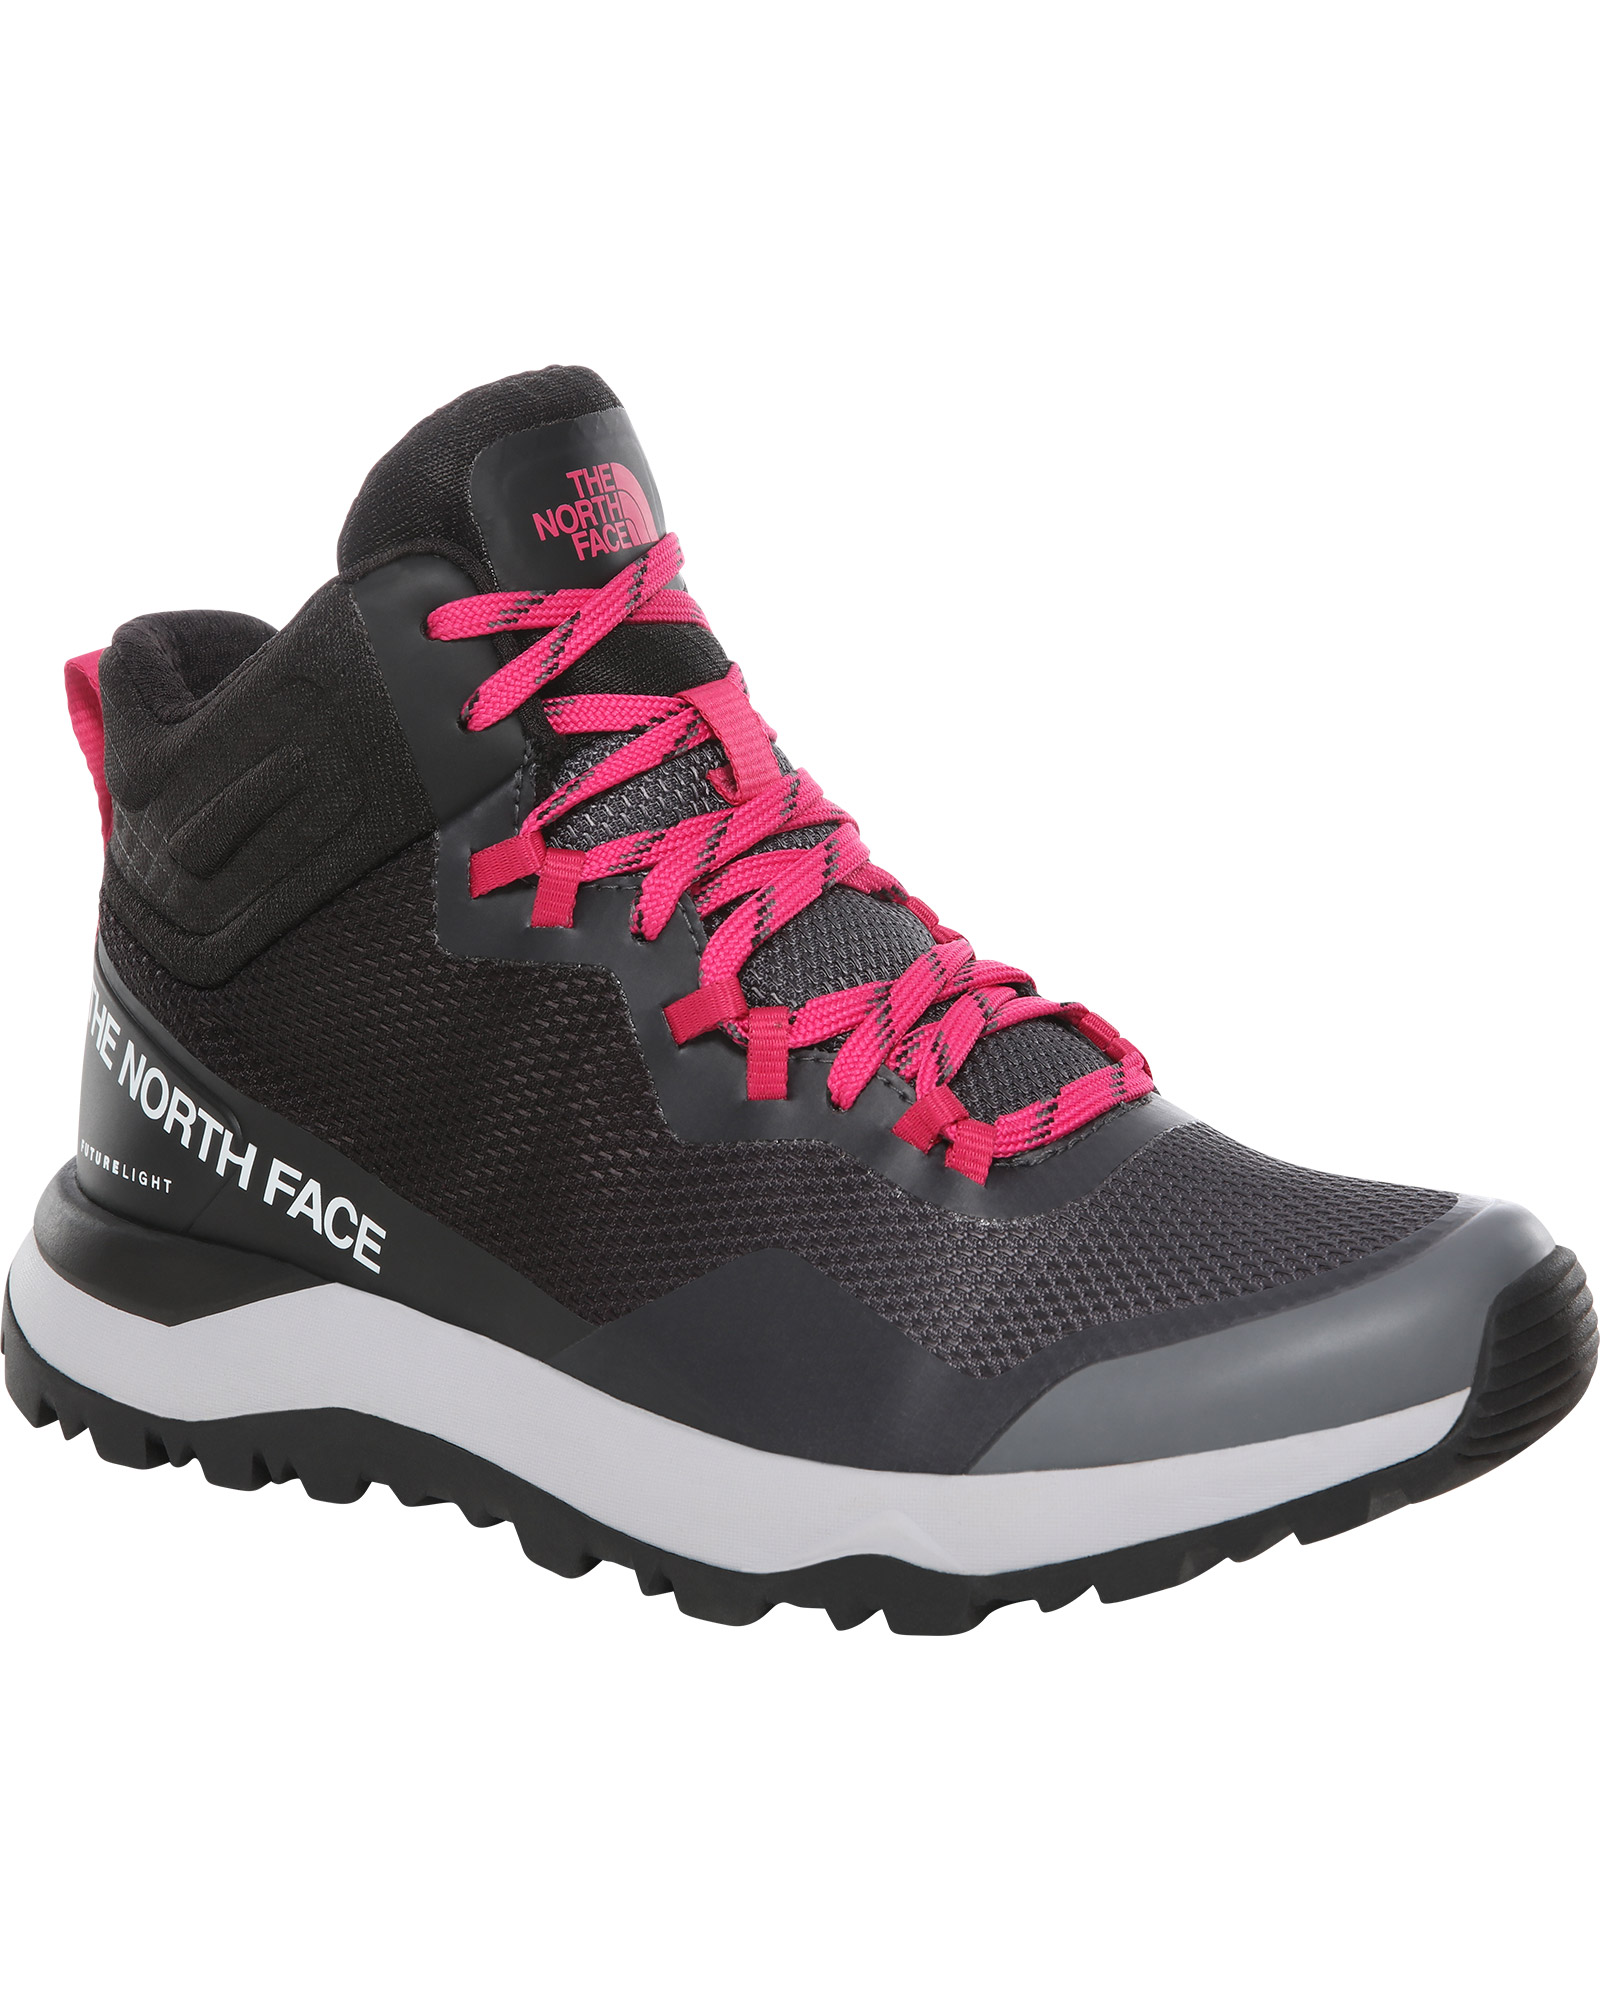 The North Face Women's Activist Mid FUTURELIGHT Walking Boots Zinc Grey/TNF Black 0